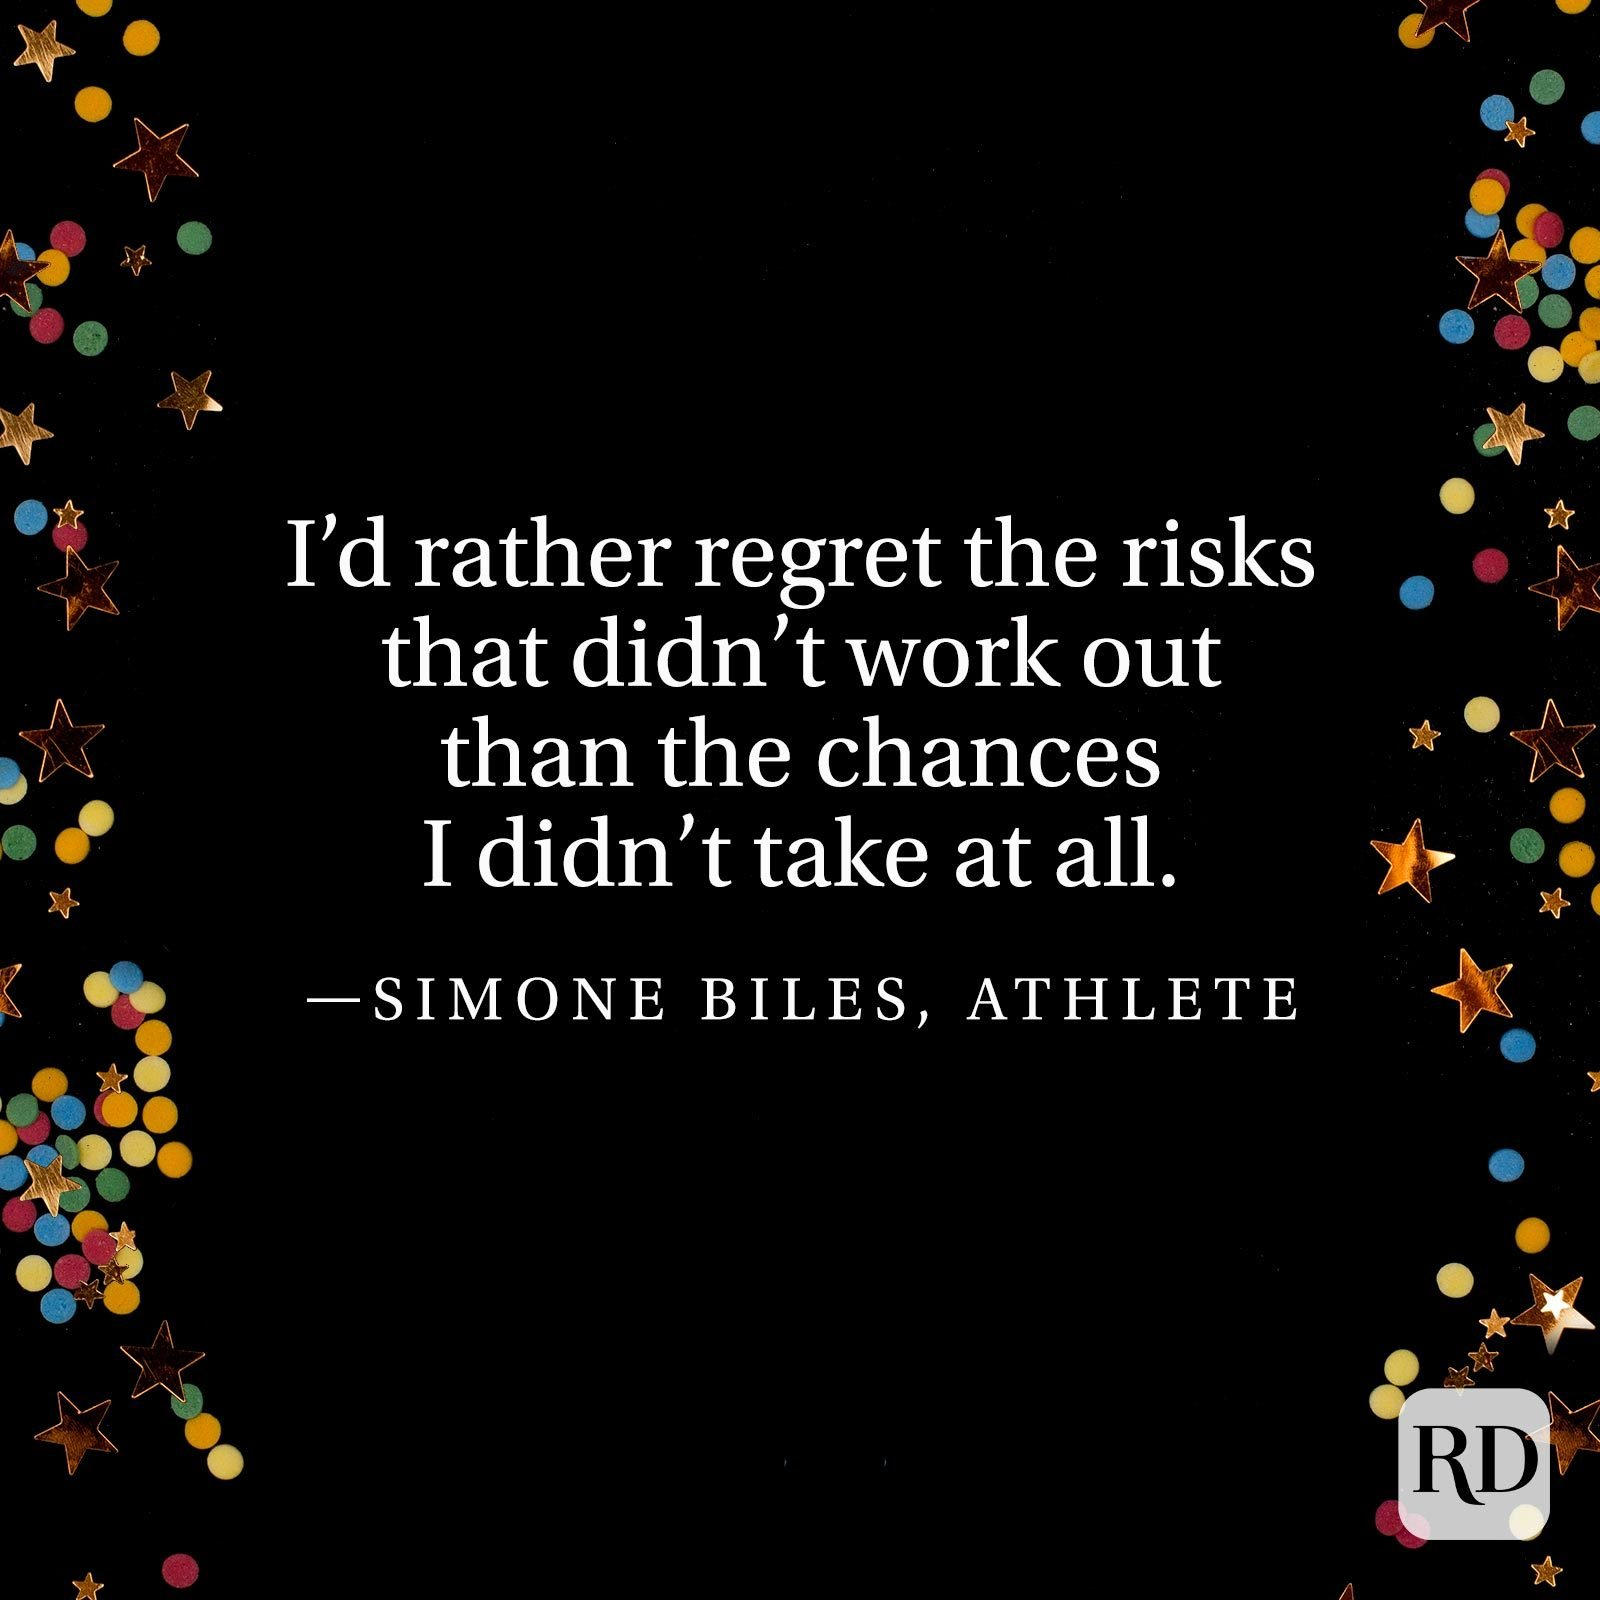 """I'd rather regret the risks that didn't work out than the chances I didn't take at all."" —Simone Biles, athlete"